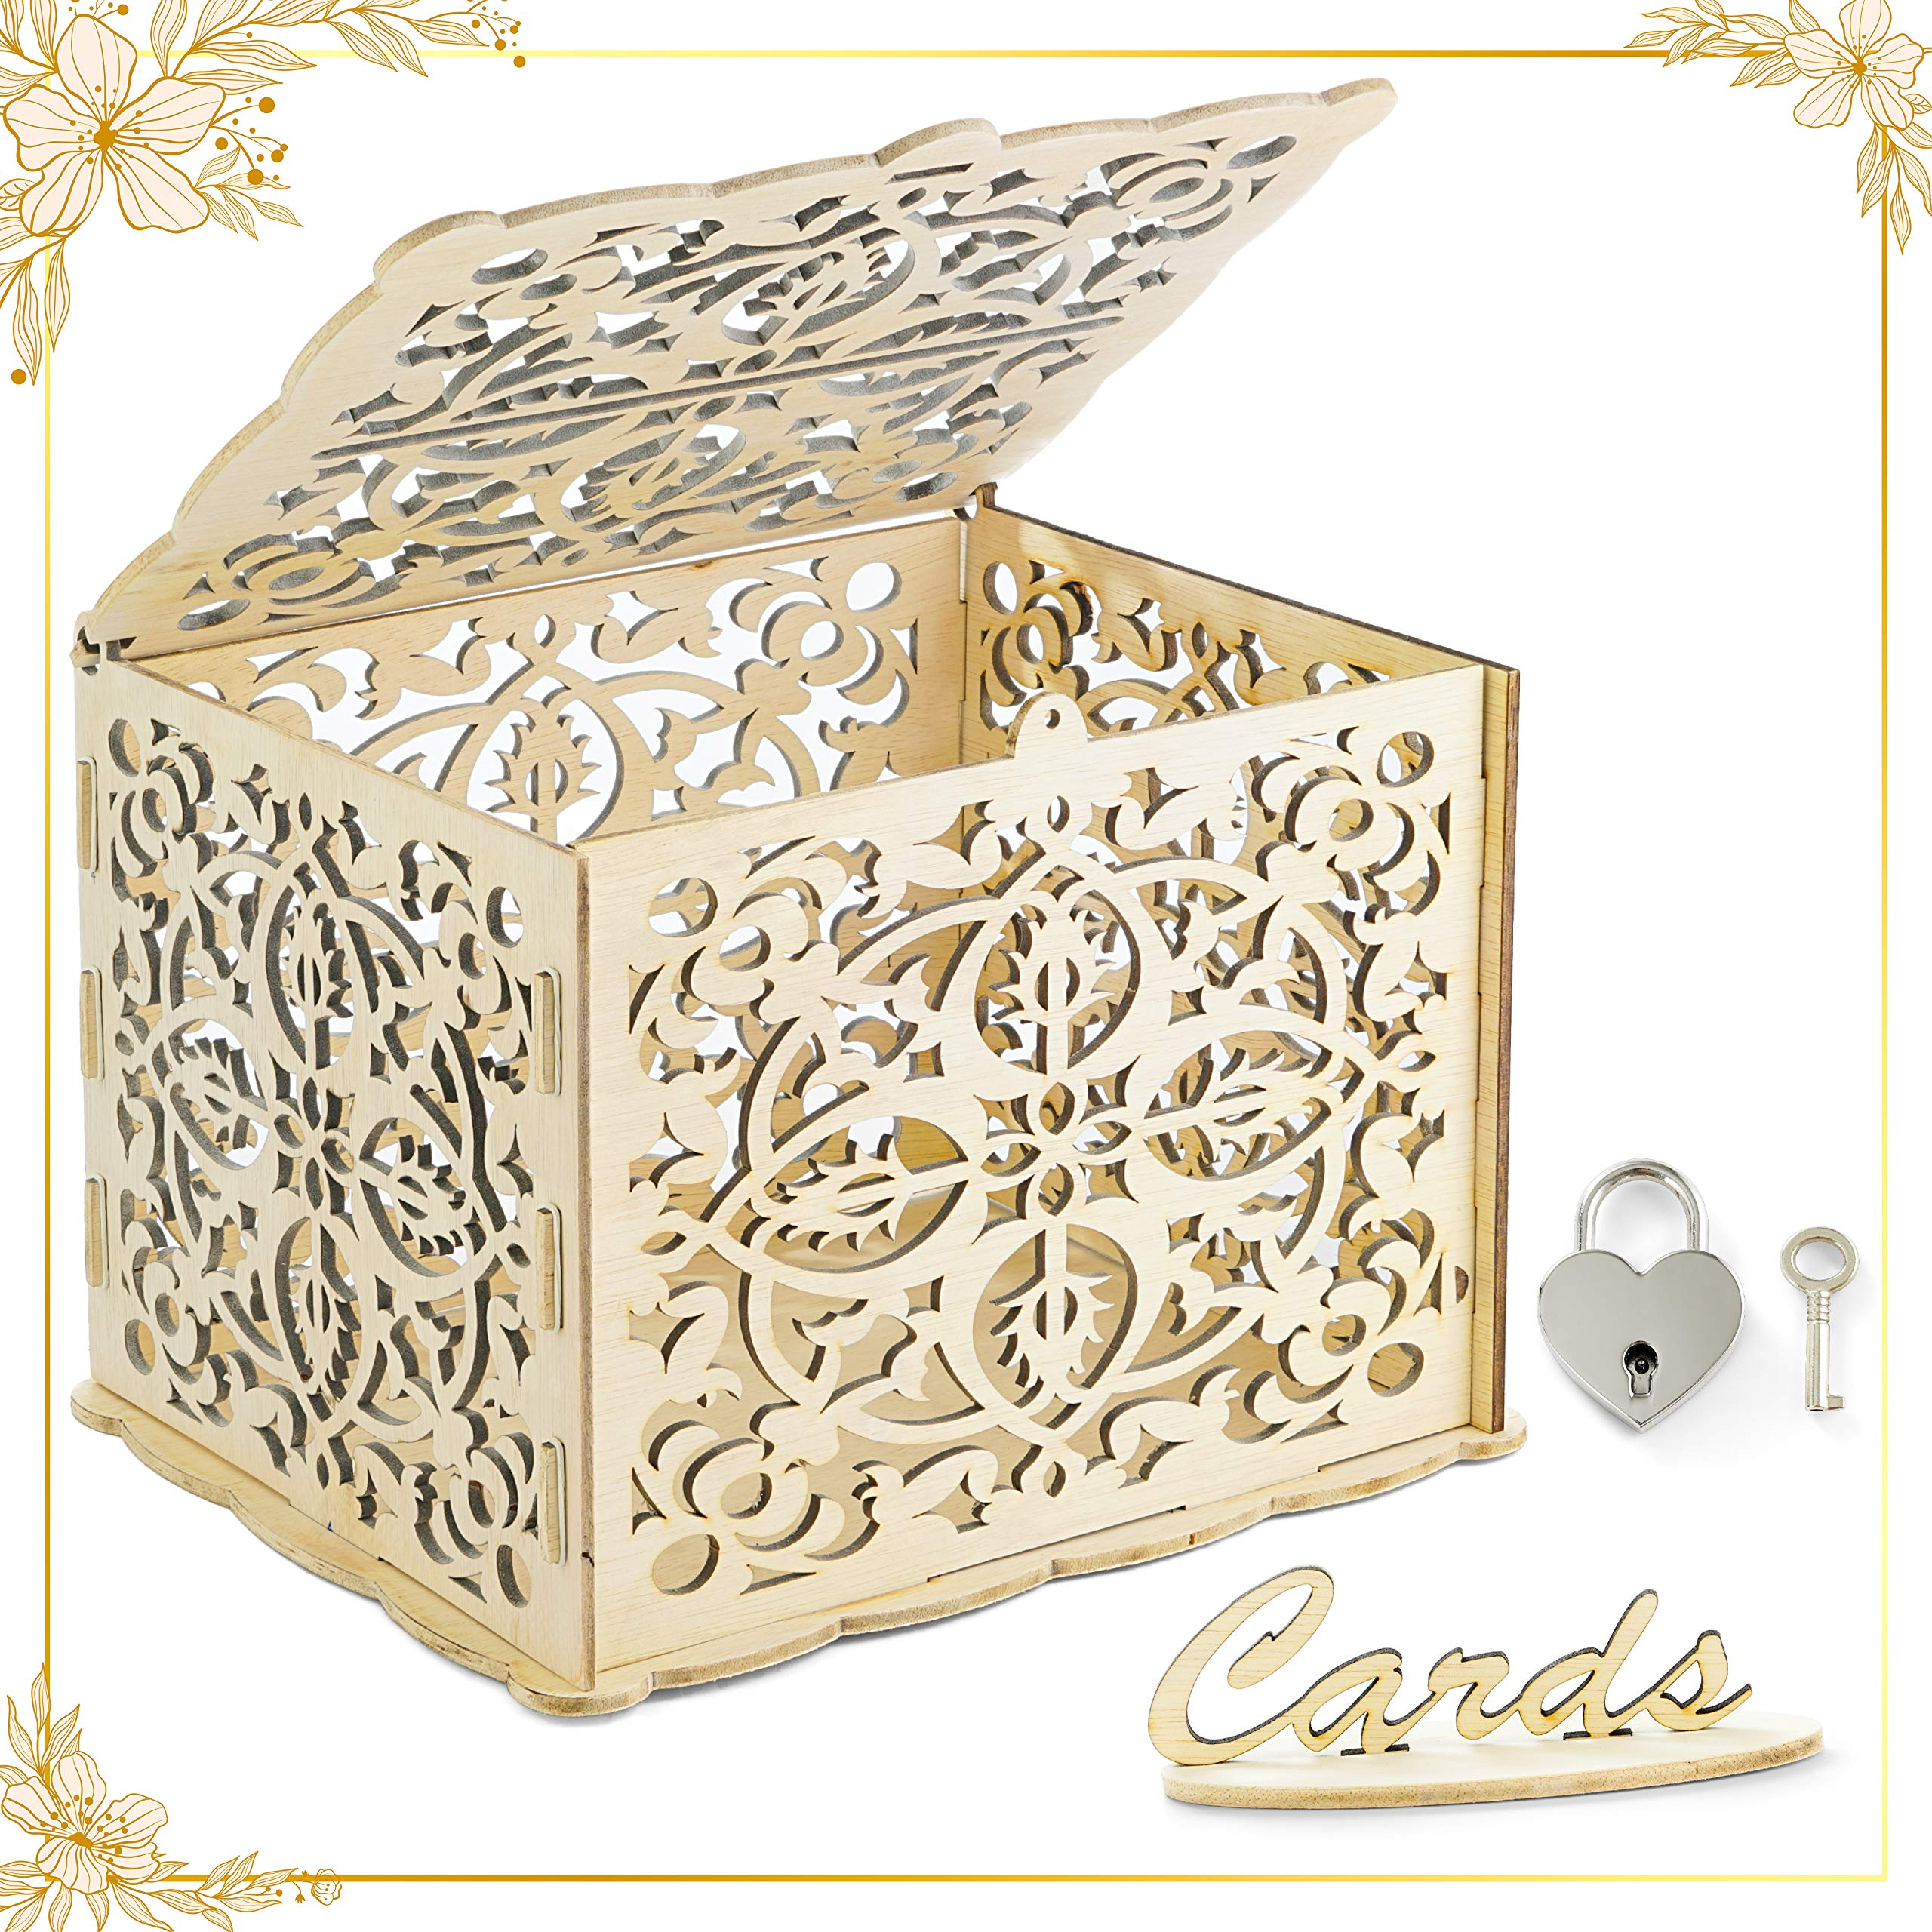 LUTANI Wedding Money Box with Lock for Cards - DIY Wedding Card Box - Wedding Gift Boxes for Baby Showers, Anniversary, Party, Decorations (Large)